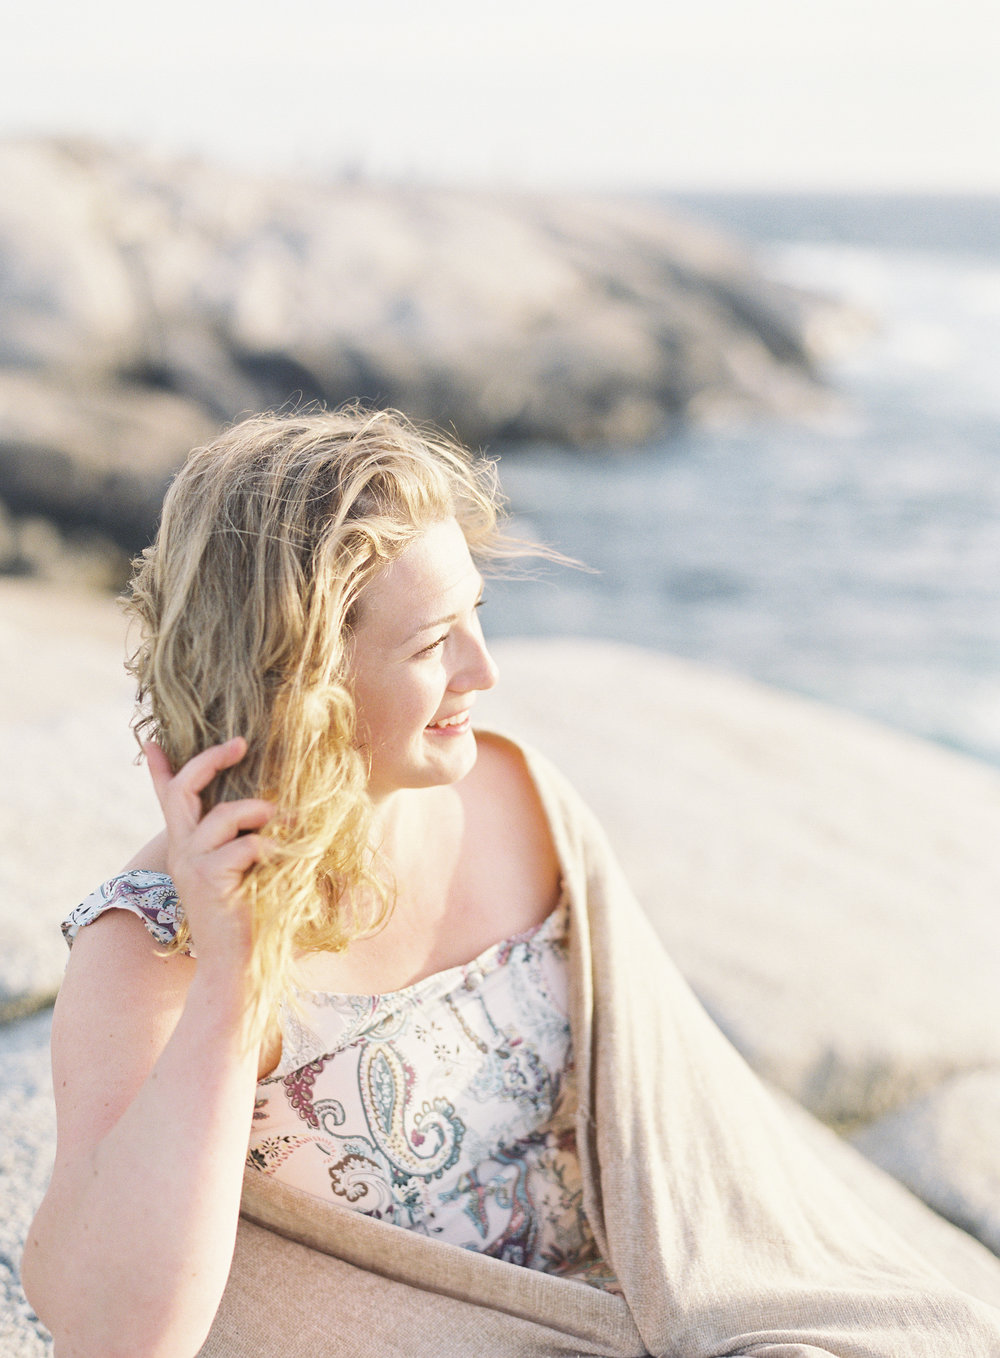 Jacqueline Anne Photography - Alex and Andrew Engagement at Peggy's Cove - Halifax-127.jpg